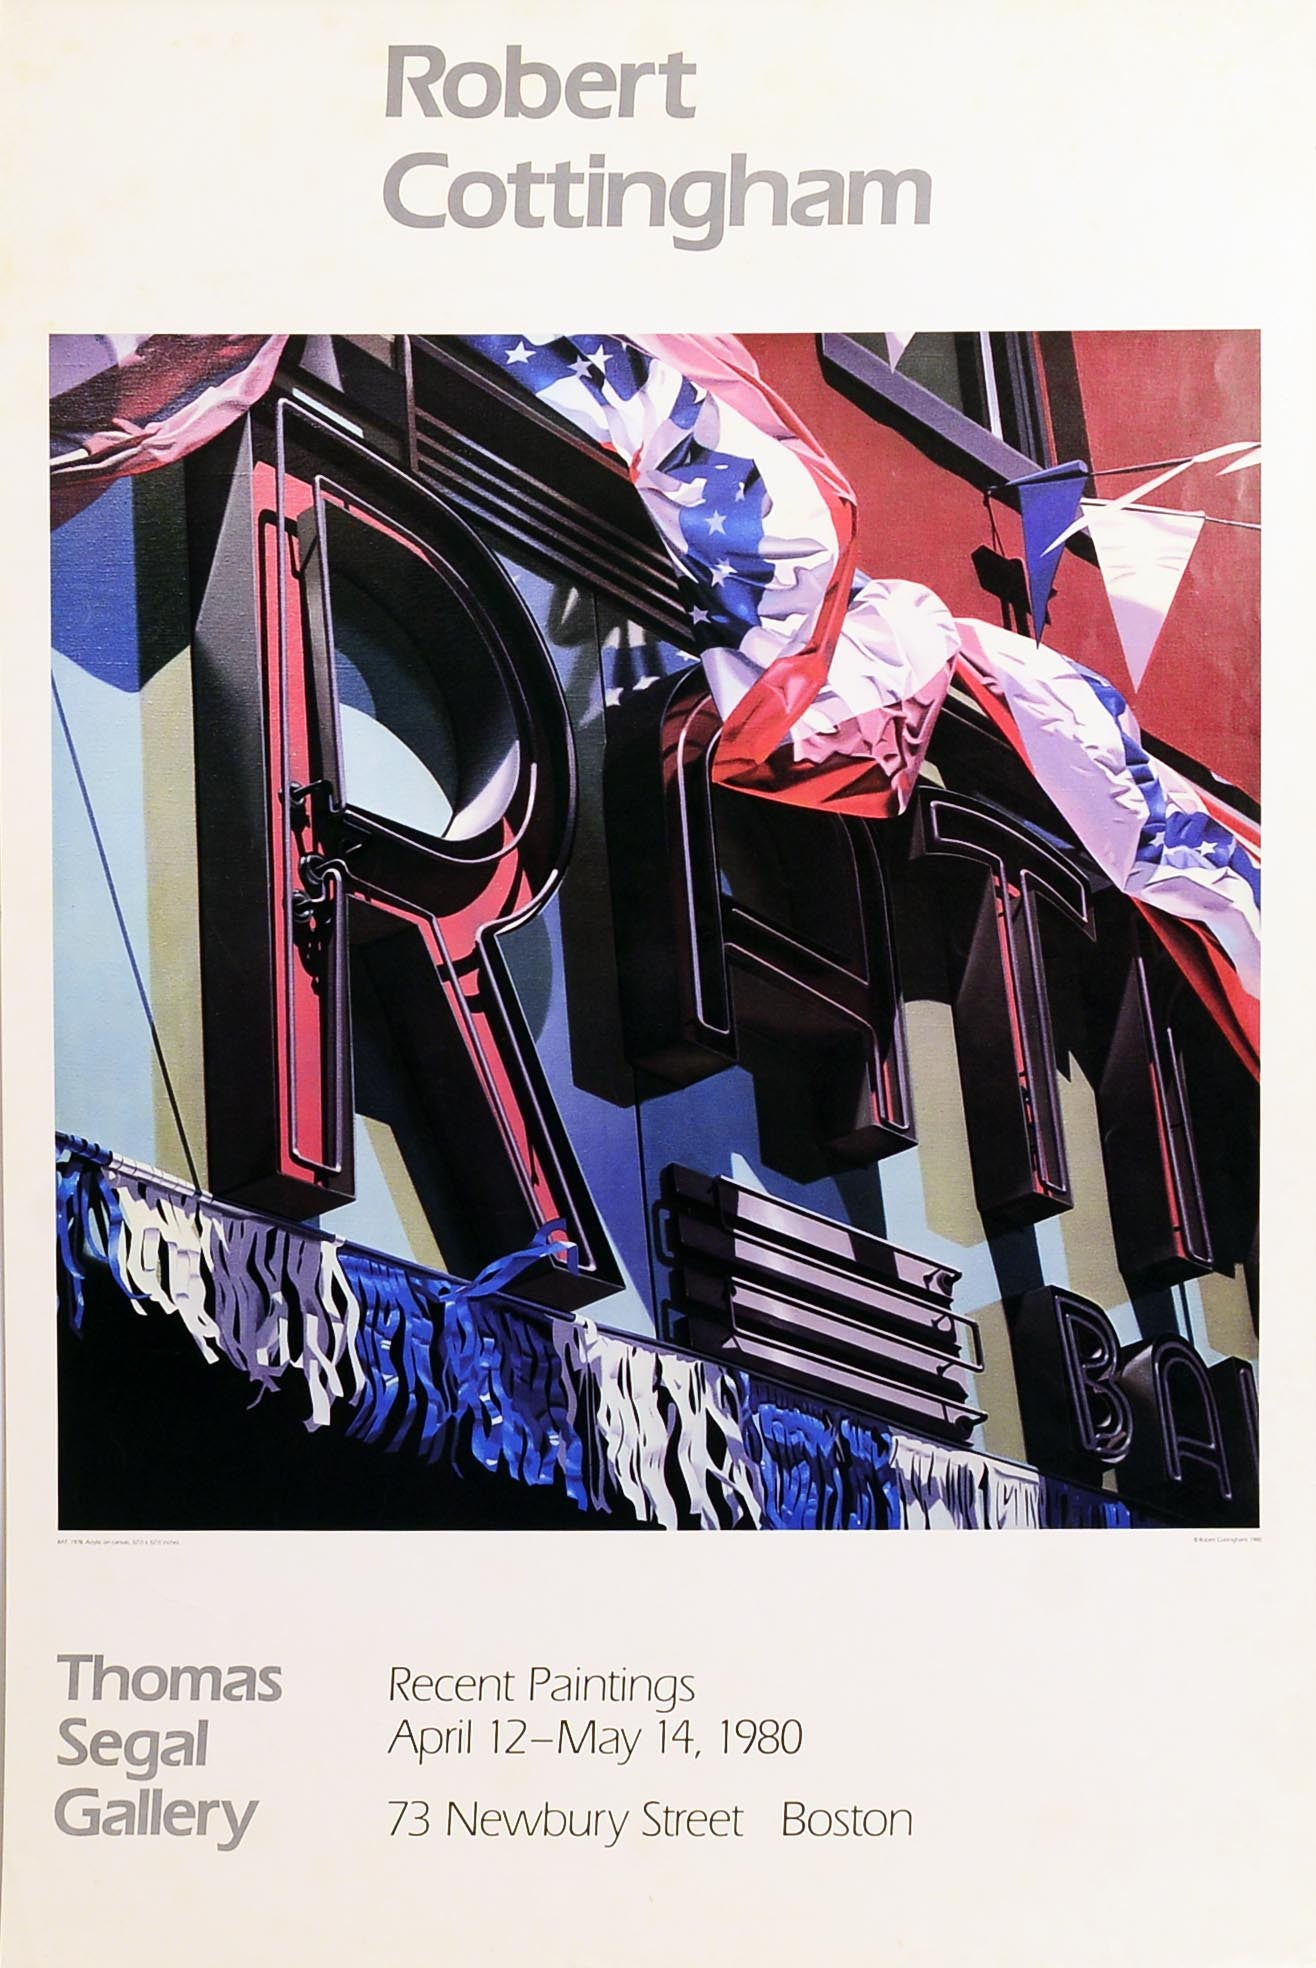 Recent Paintings, 1980 by ROBERT COTTINGHAM